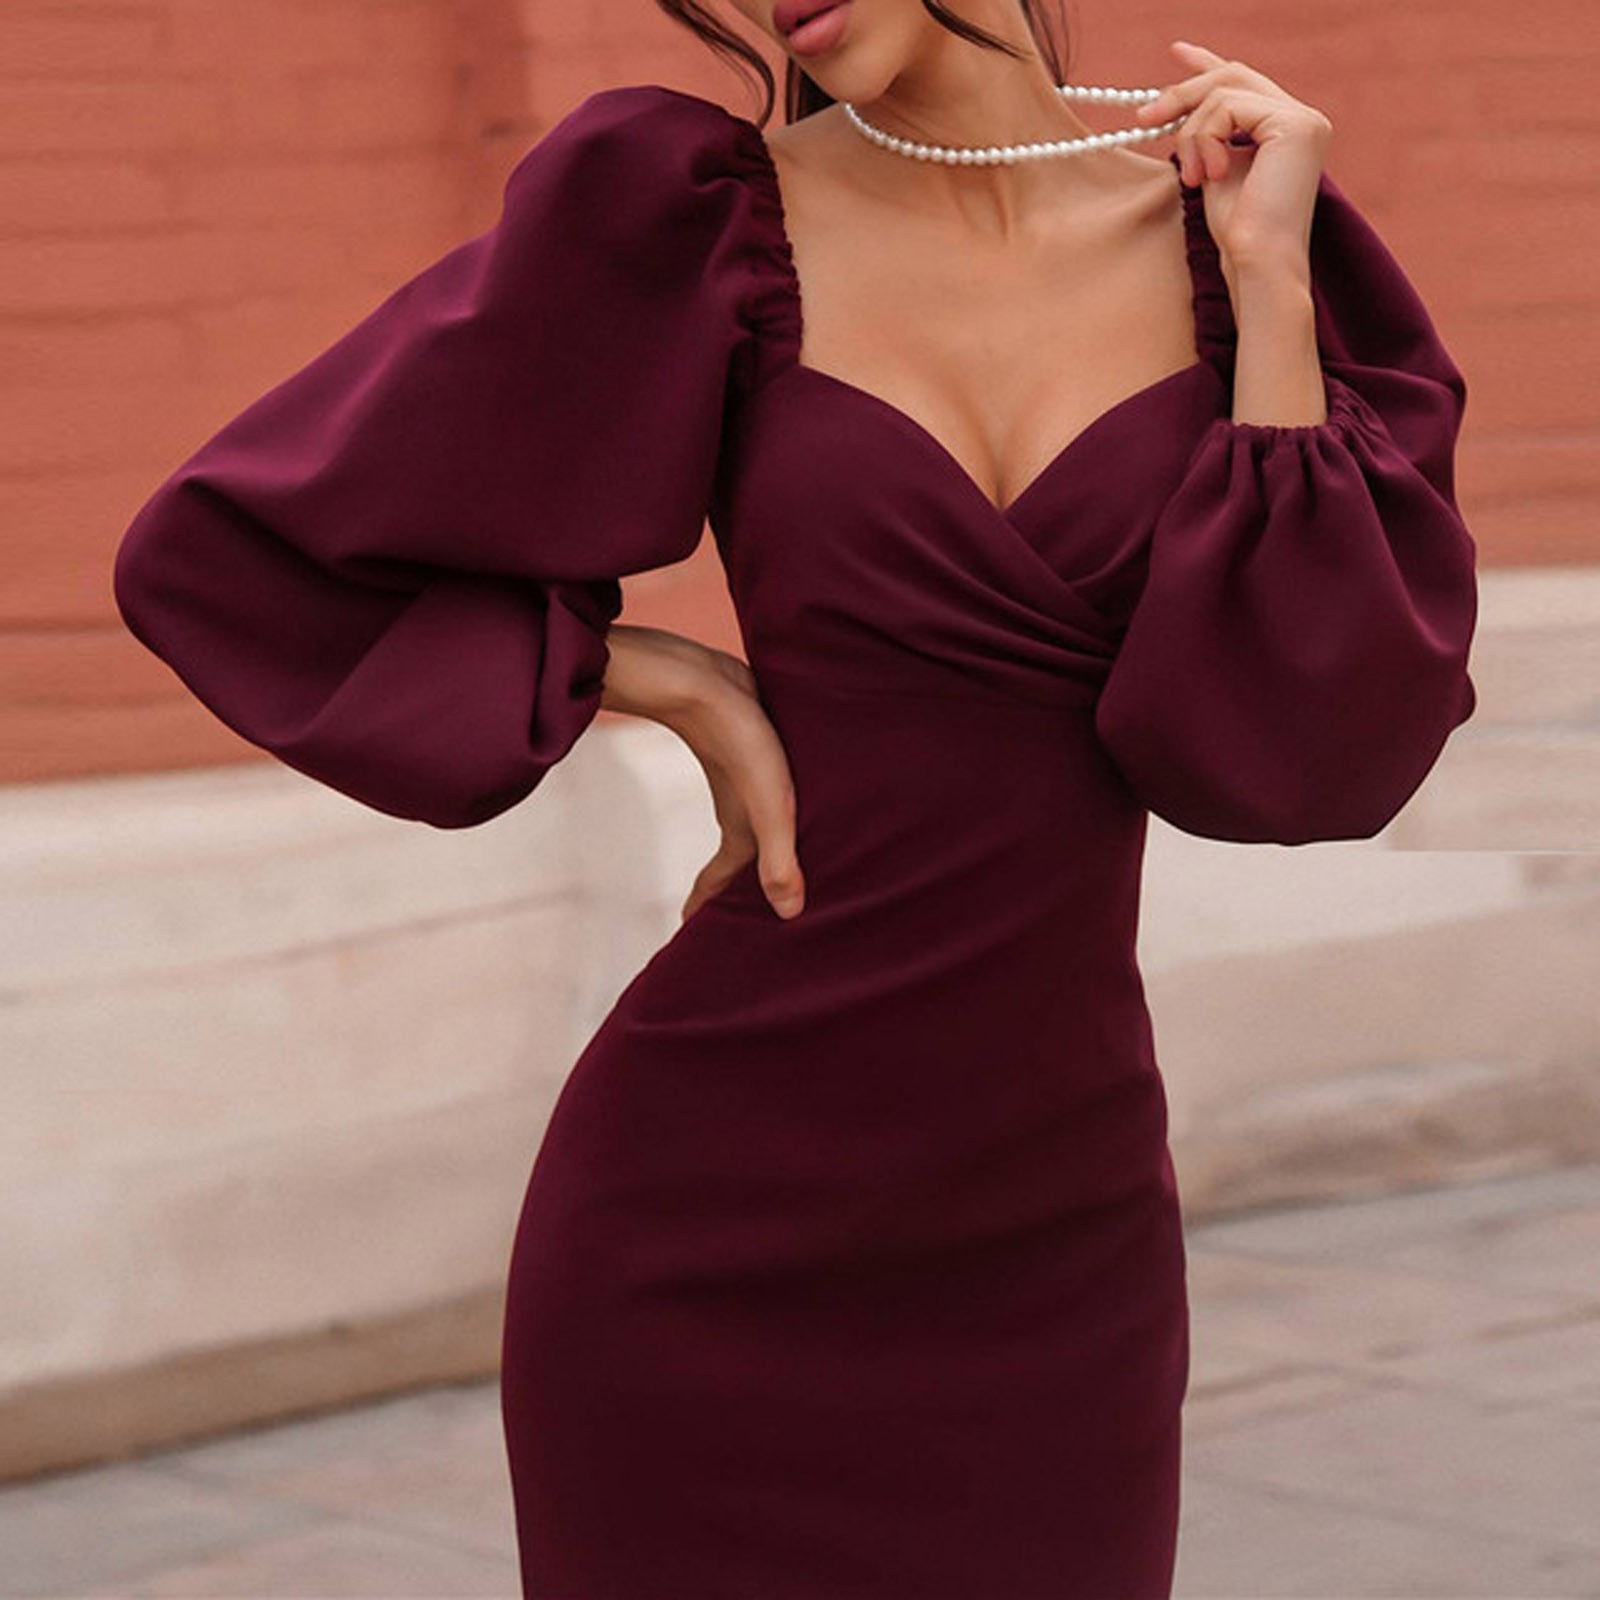 SAGACE Sexy Women Dress Puffy Sleeves V-neck Temperament Sexy One-shoulder Dress Prom Cocktail Party